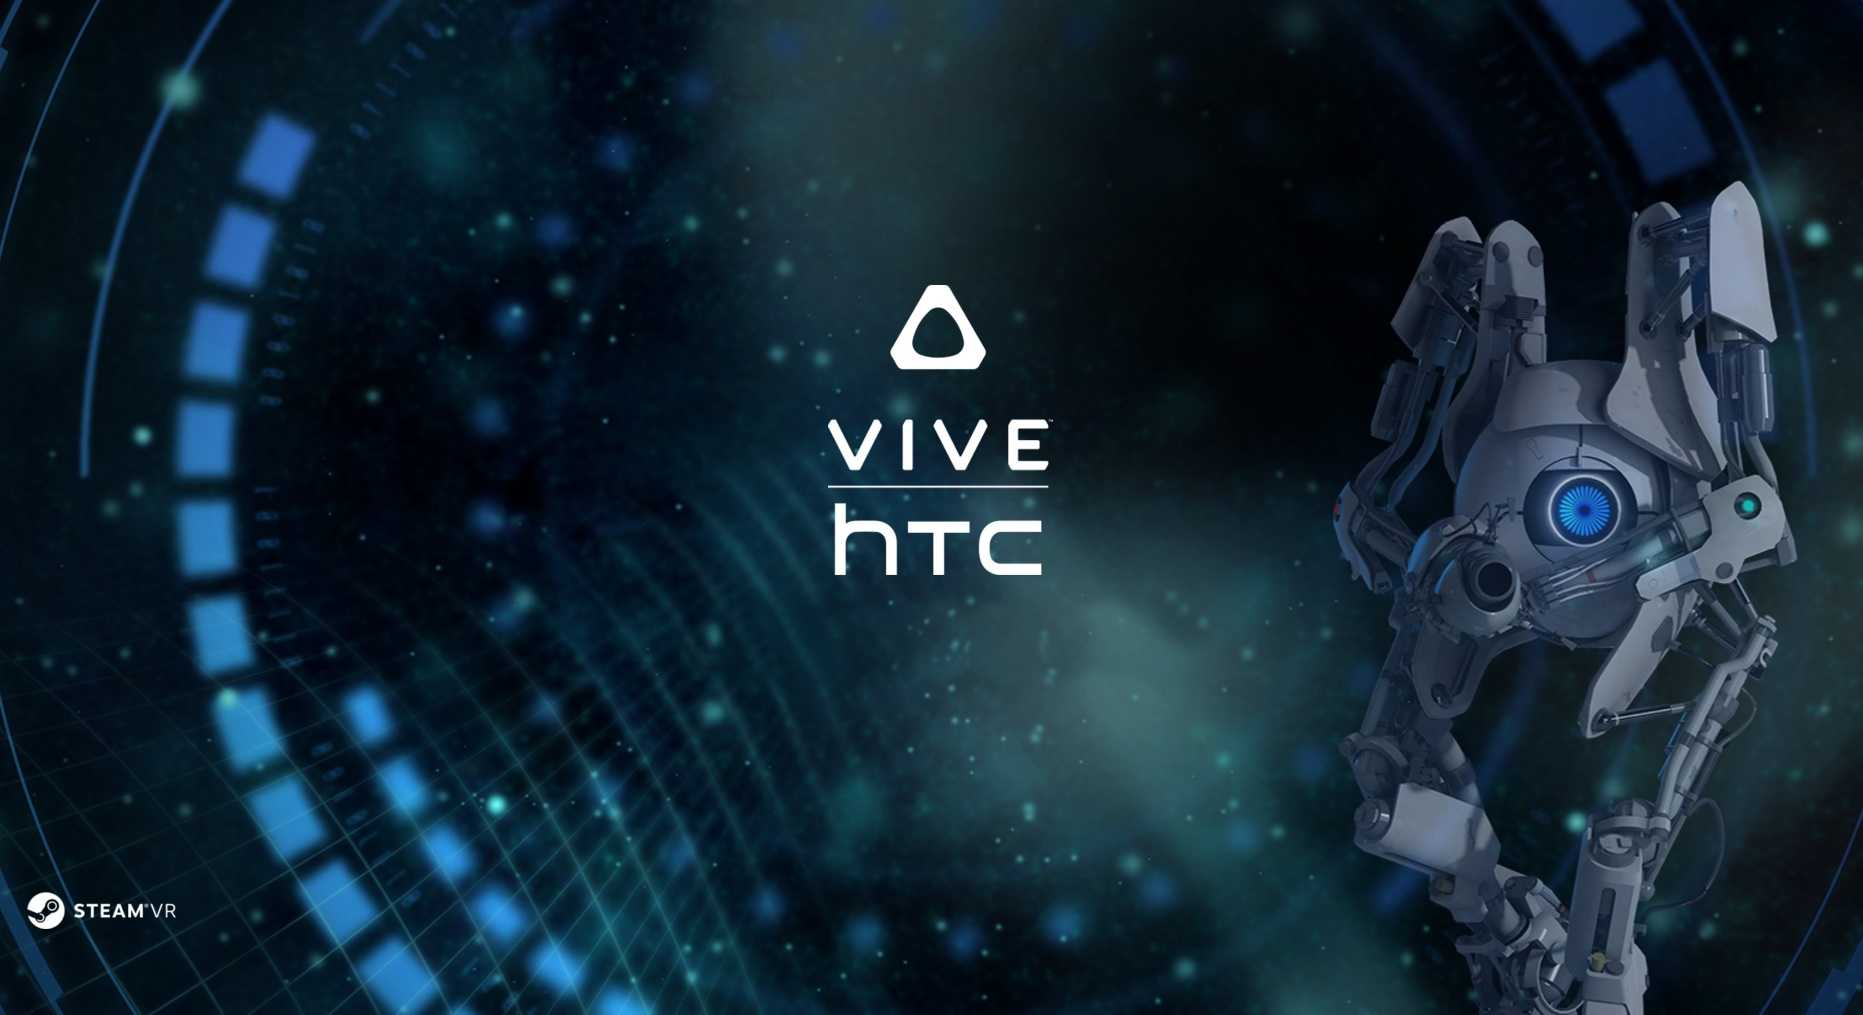 HTC Vive Native Support for SUPERHOT VR Best Oculus Rift Game : Time for Bullet Time Action